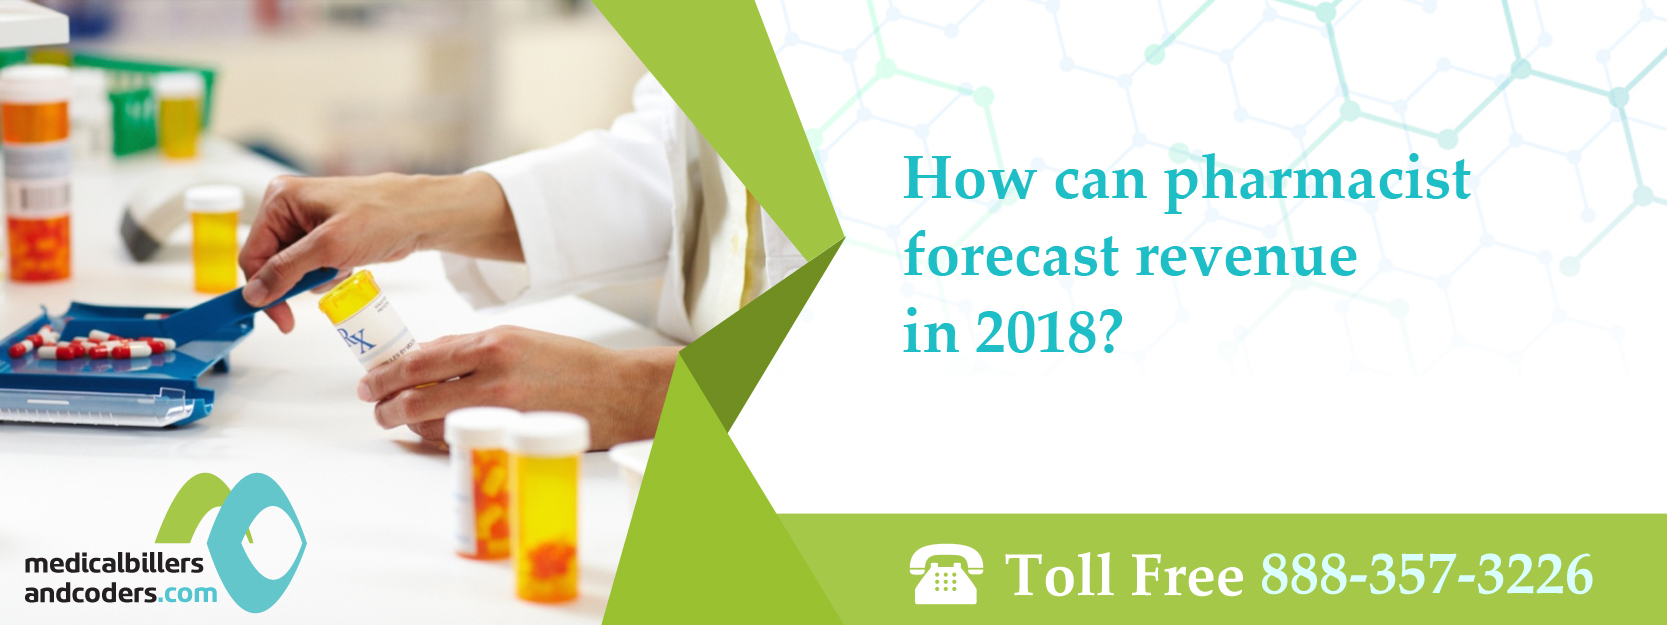 How Can Pharmacist Forecast Revenue In 2018?